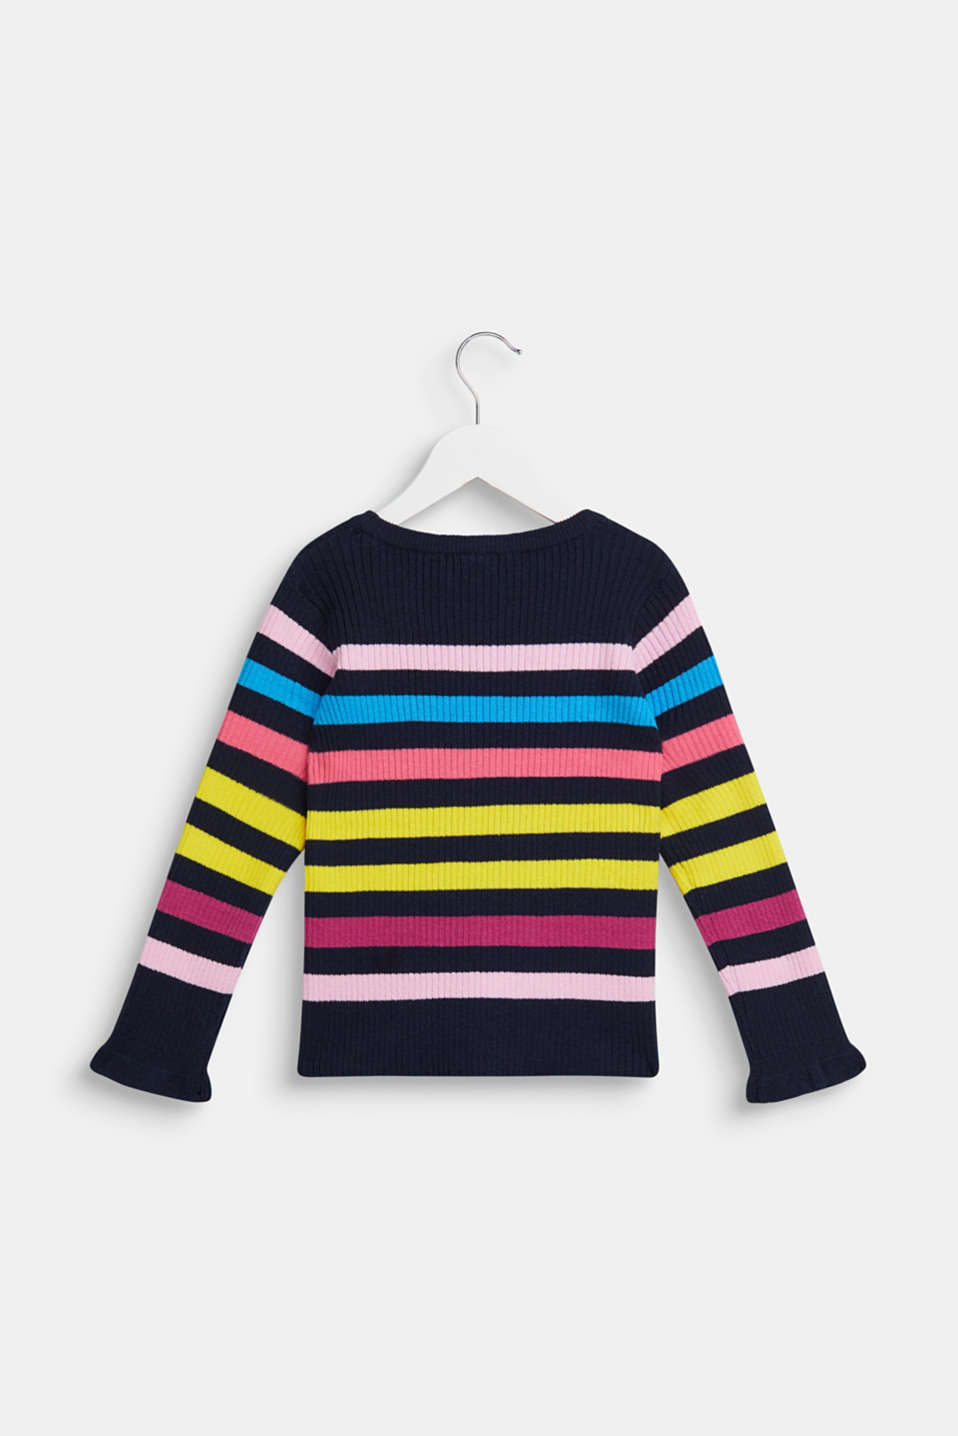 Rib knit jumper with colourful stripes, NAVY, detail image number 1